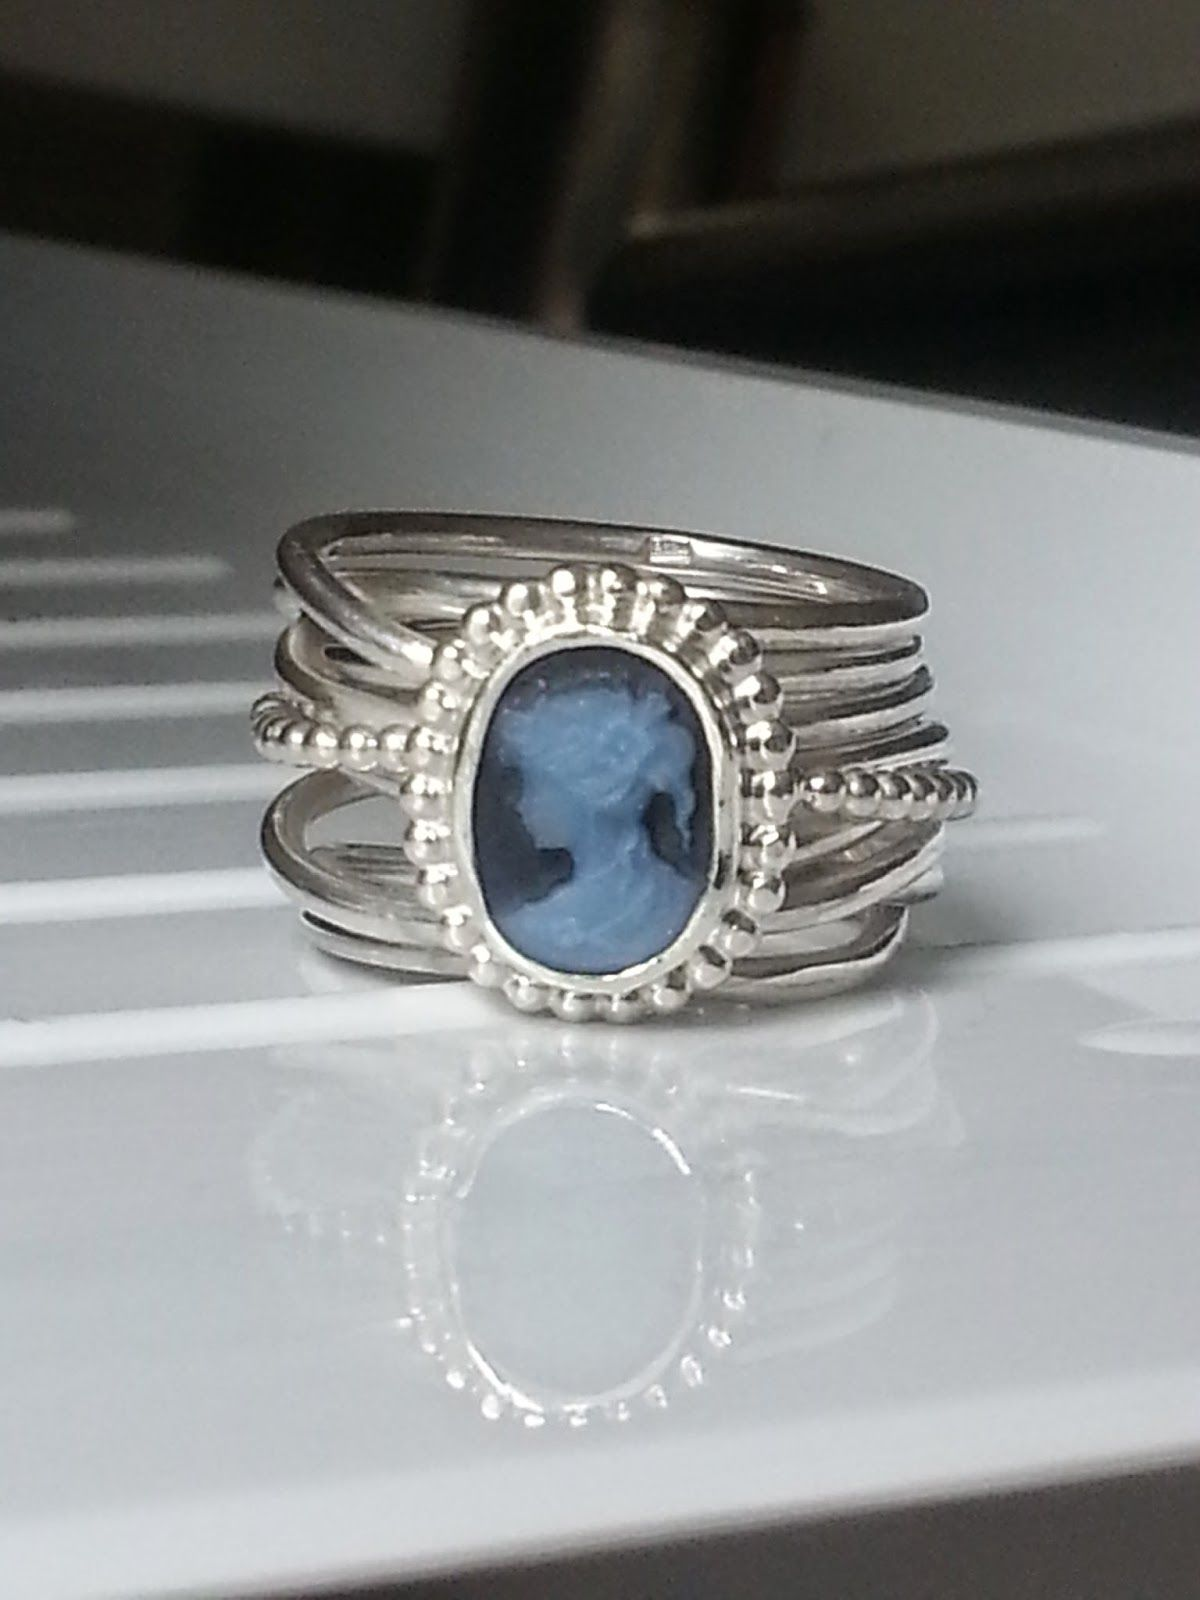 yellow sapphire stone next ostby september deco blue recta p art cobalt rings ring product barton previous ladies gold